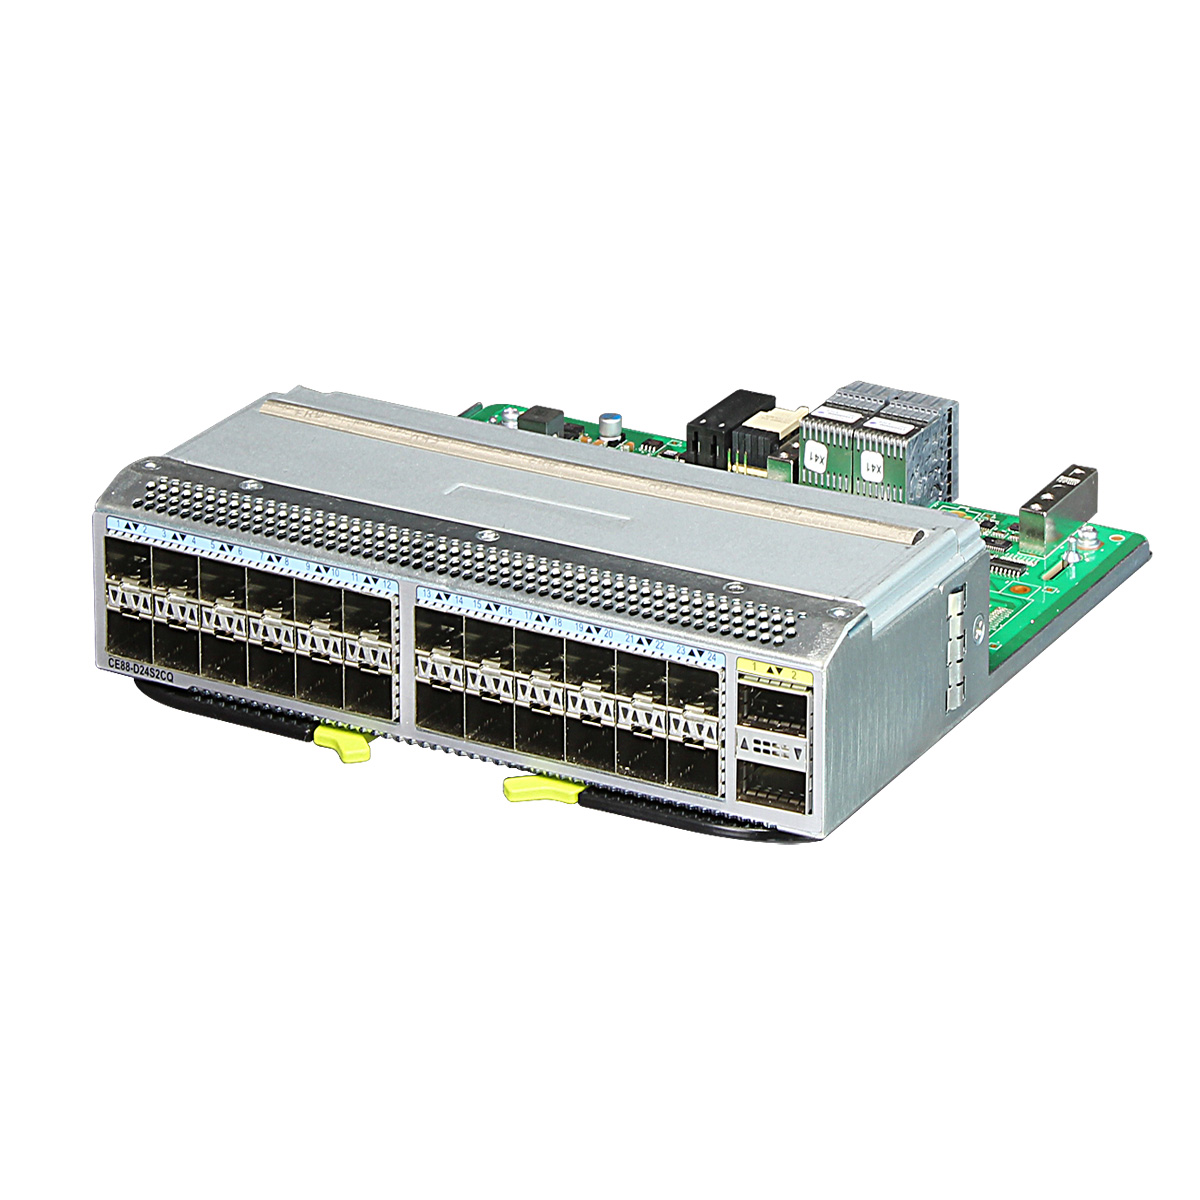 CE88-D24S2CQ 24-Port 10GE/25GE (SFP28) and 2-Port 40GE/100GE (QSFP28) Interface Network Card 1